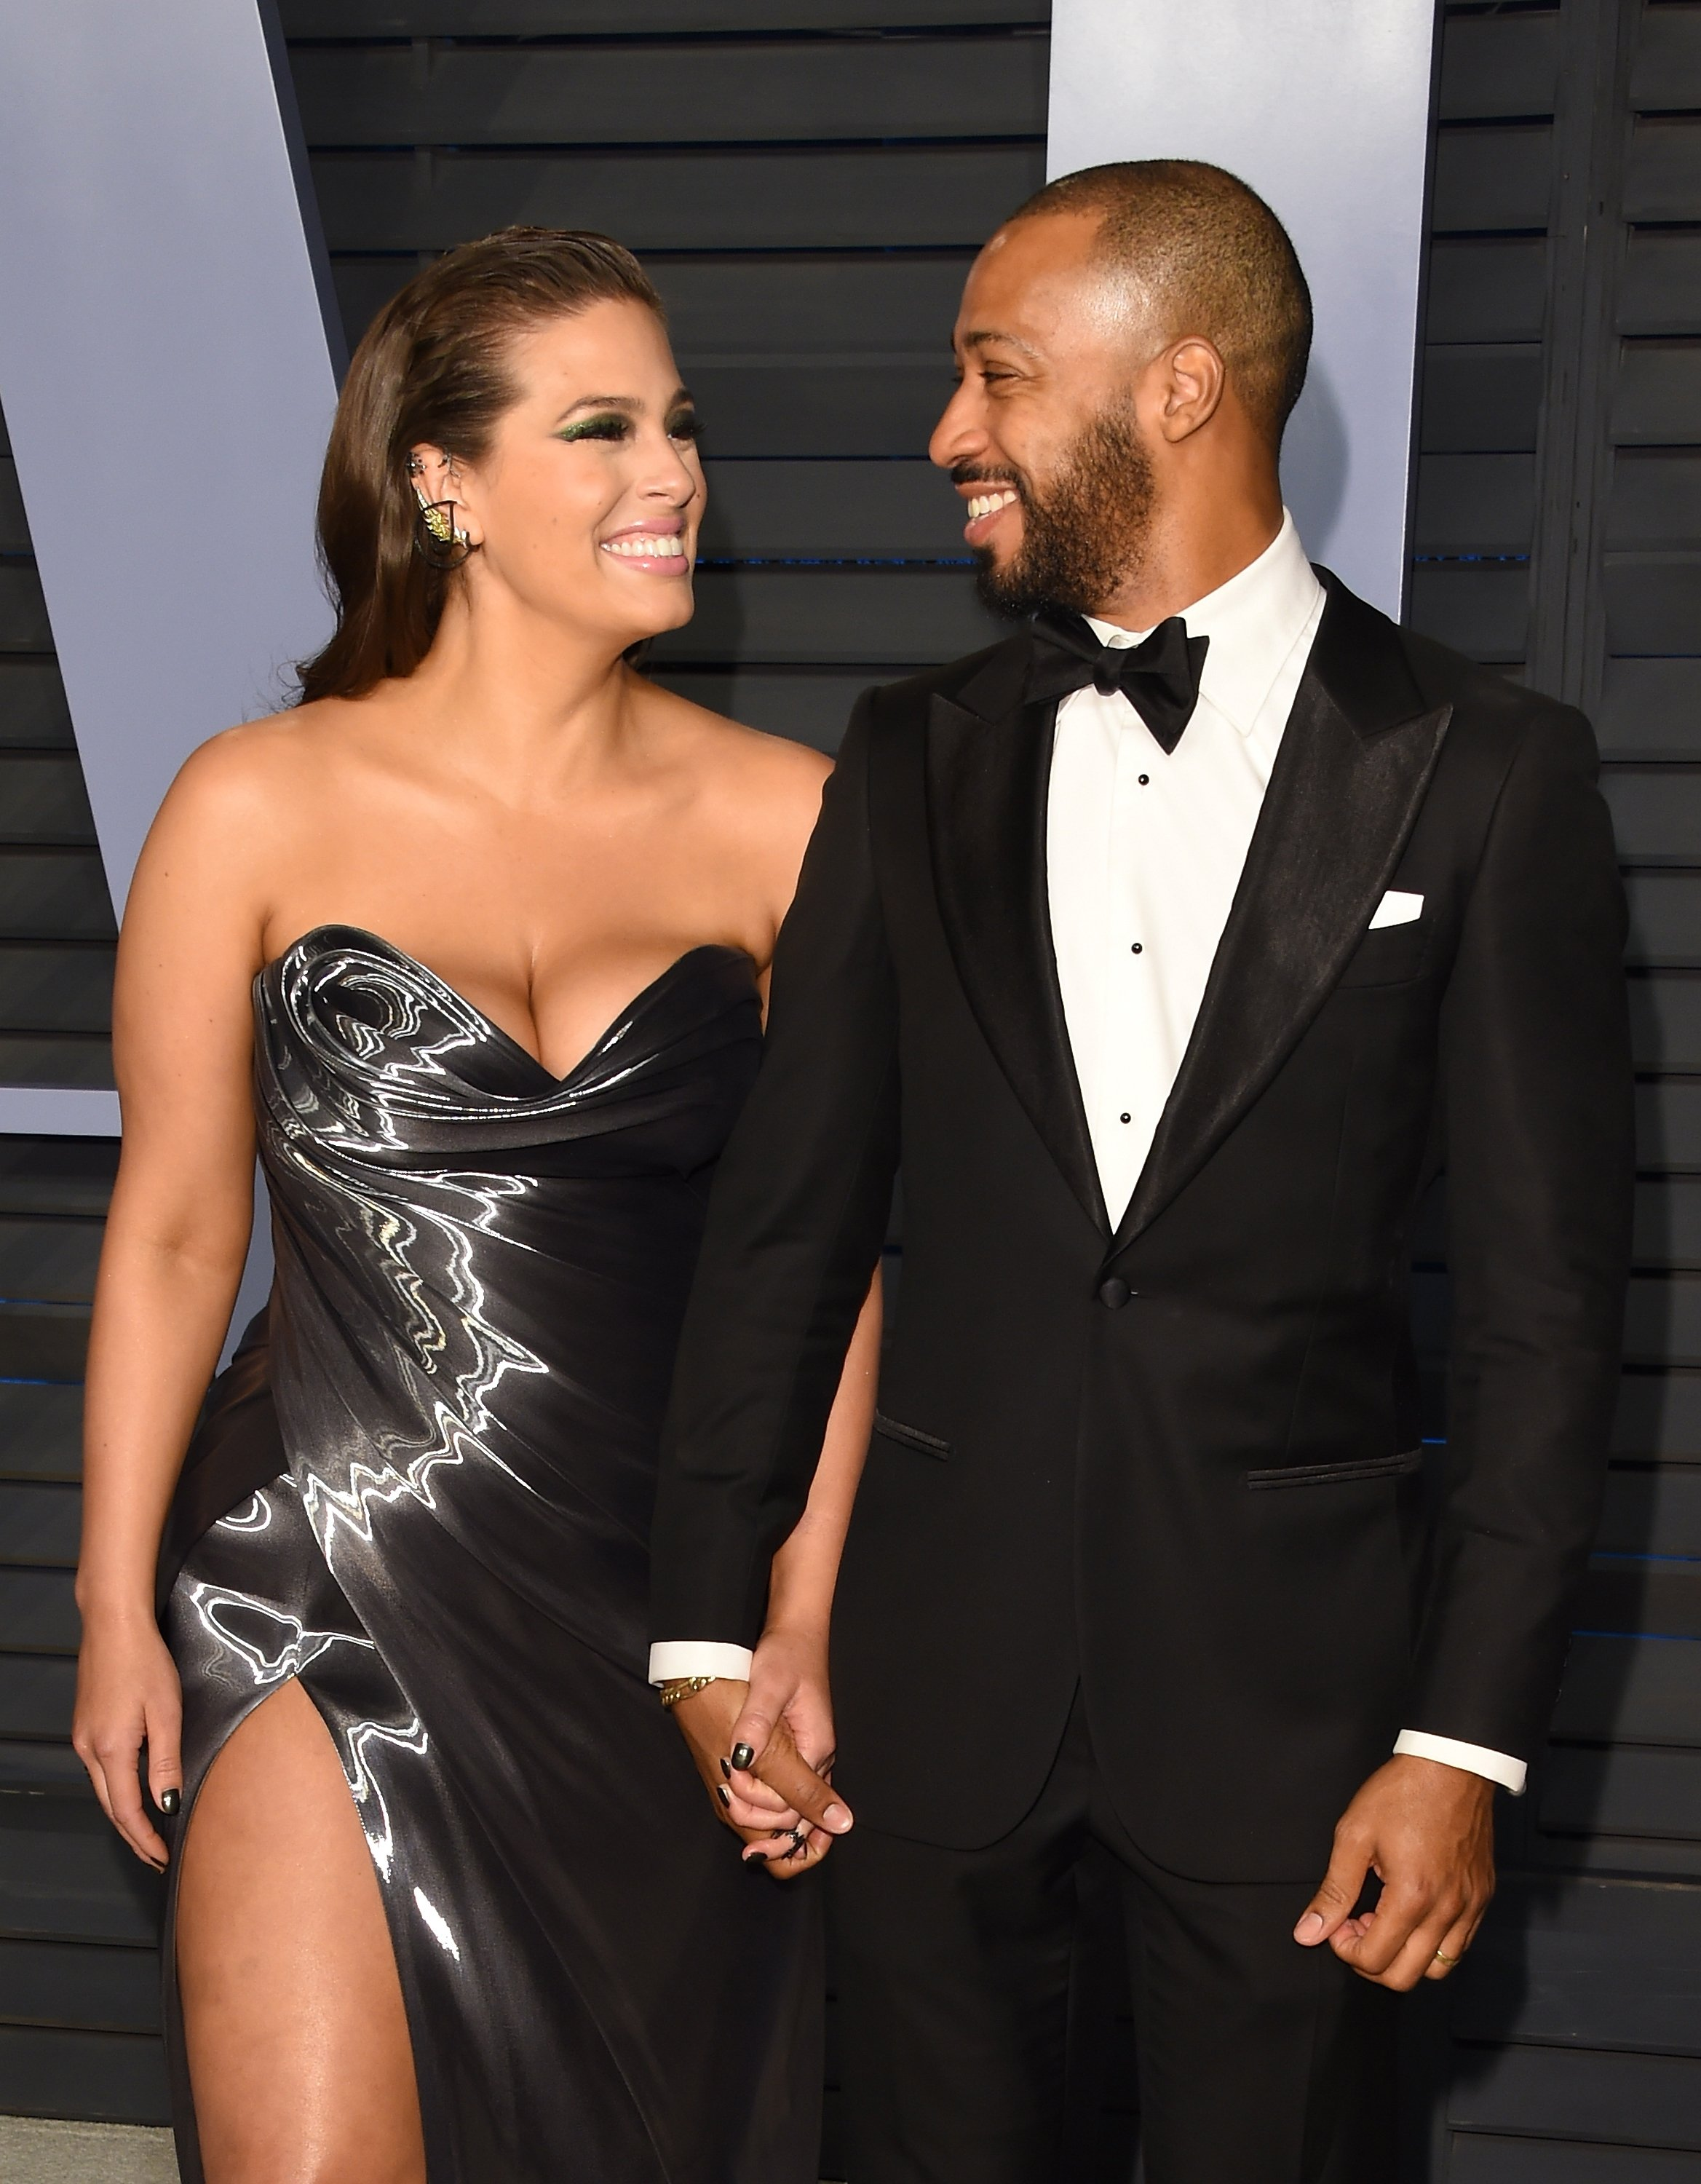 Ashley Graham and Justin Ervin attend the 2018 Vanity Fair Oscar Party at the Wallis Annenberg Center for the Performing Arts on March 4, 2018 | Photo: Getty Images